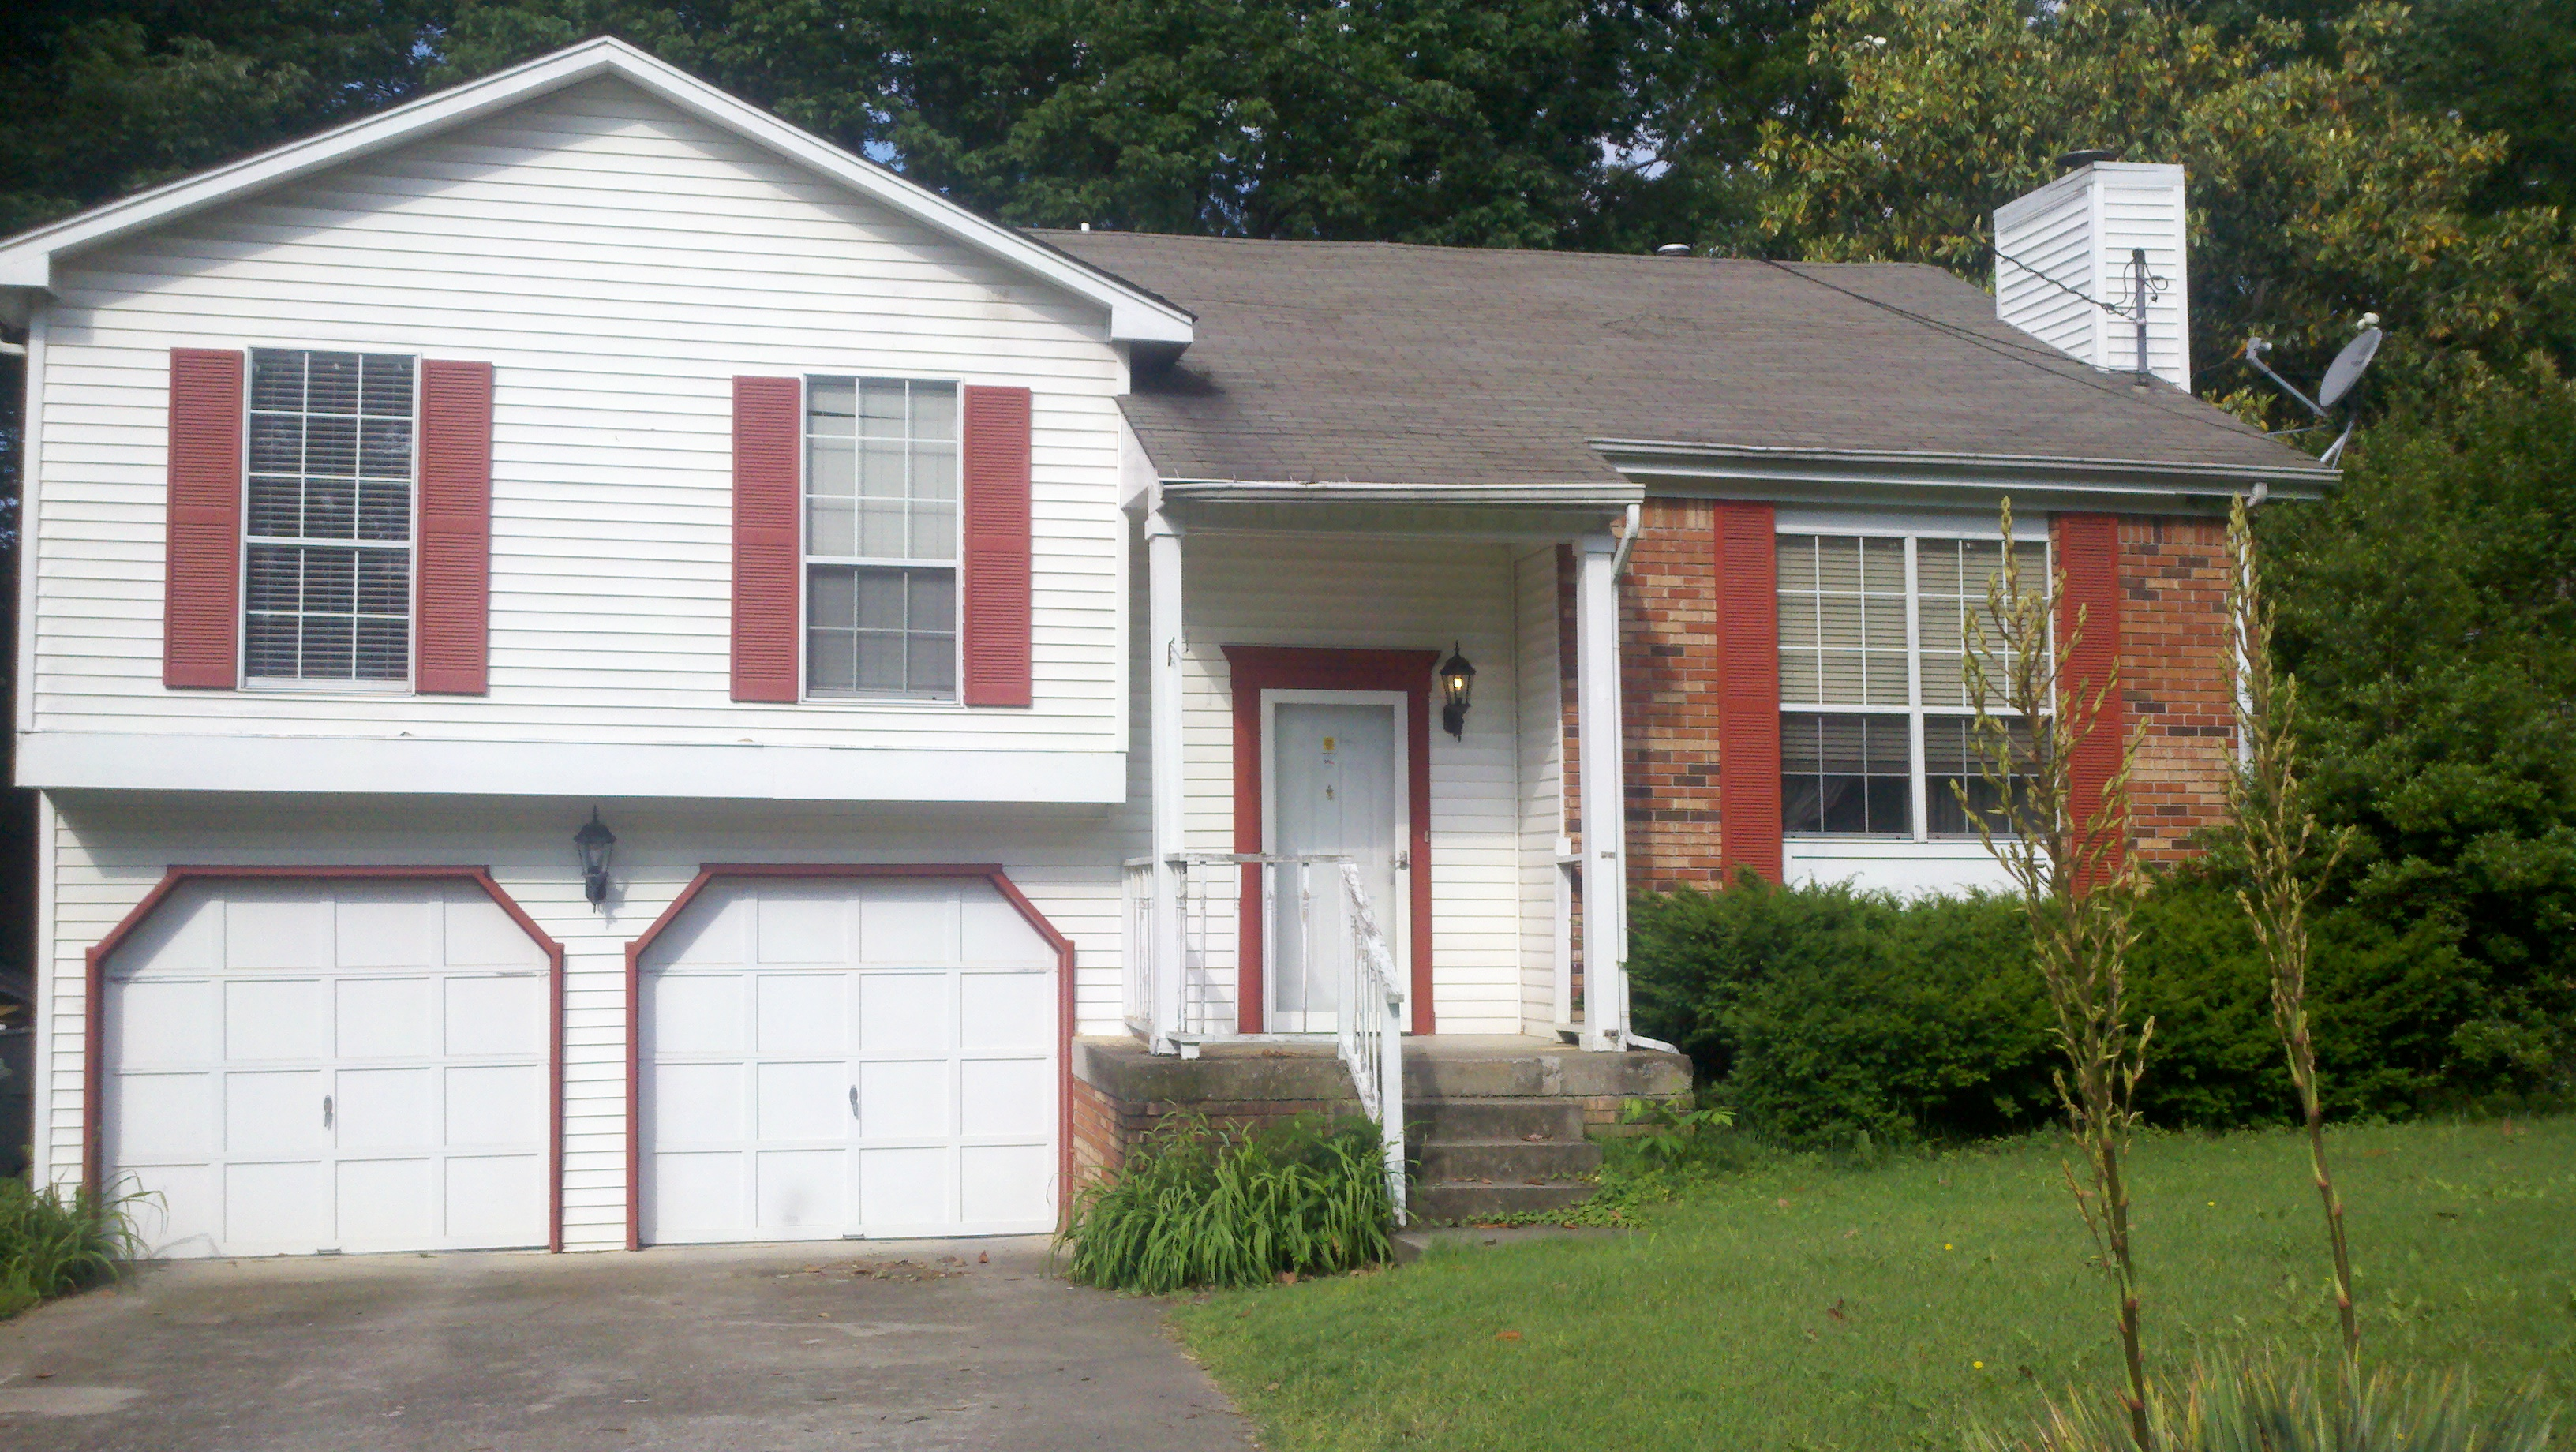 Antioch TN Piccadilly Square Successful FHA Short Sale Closing